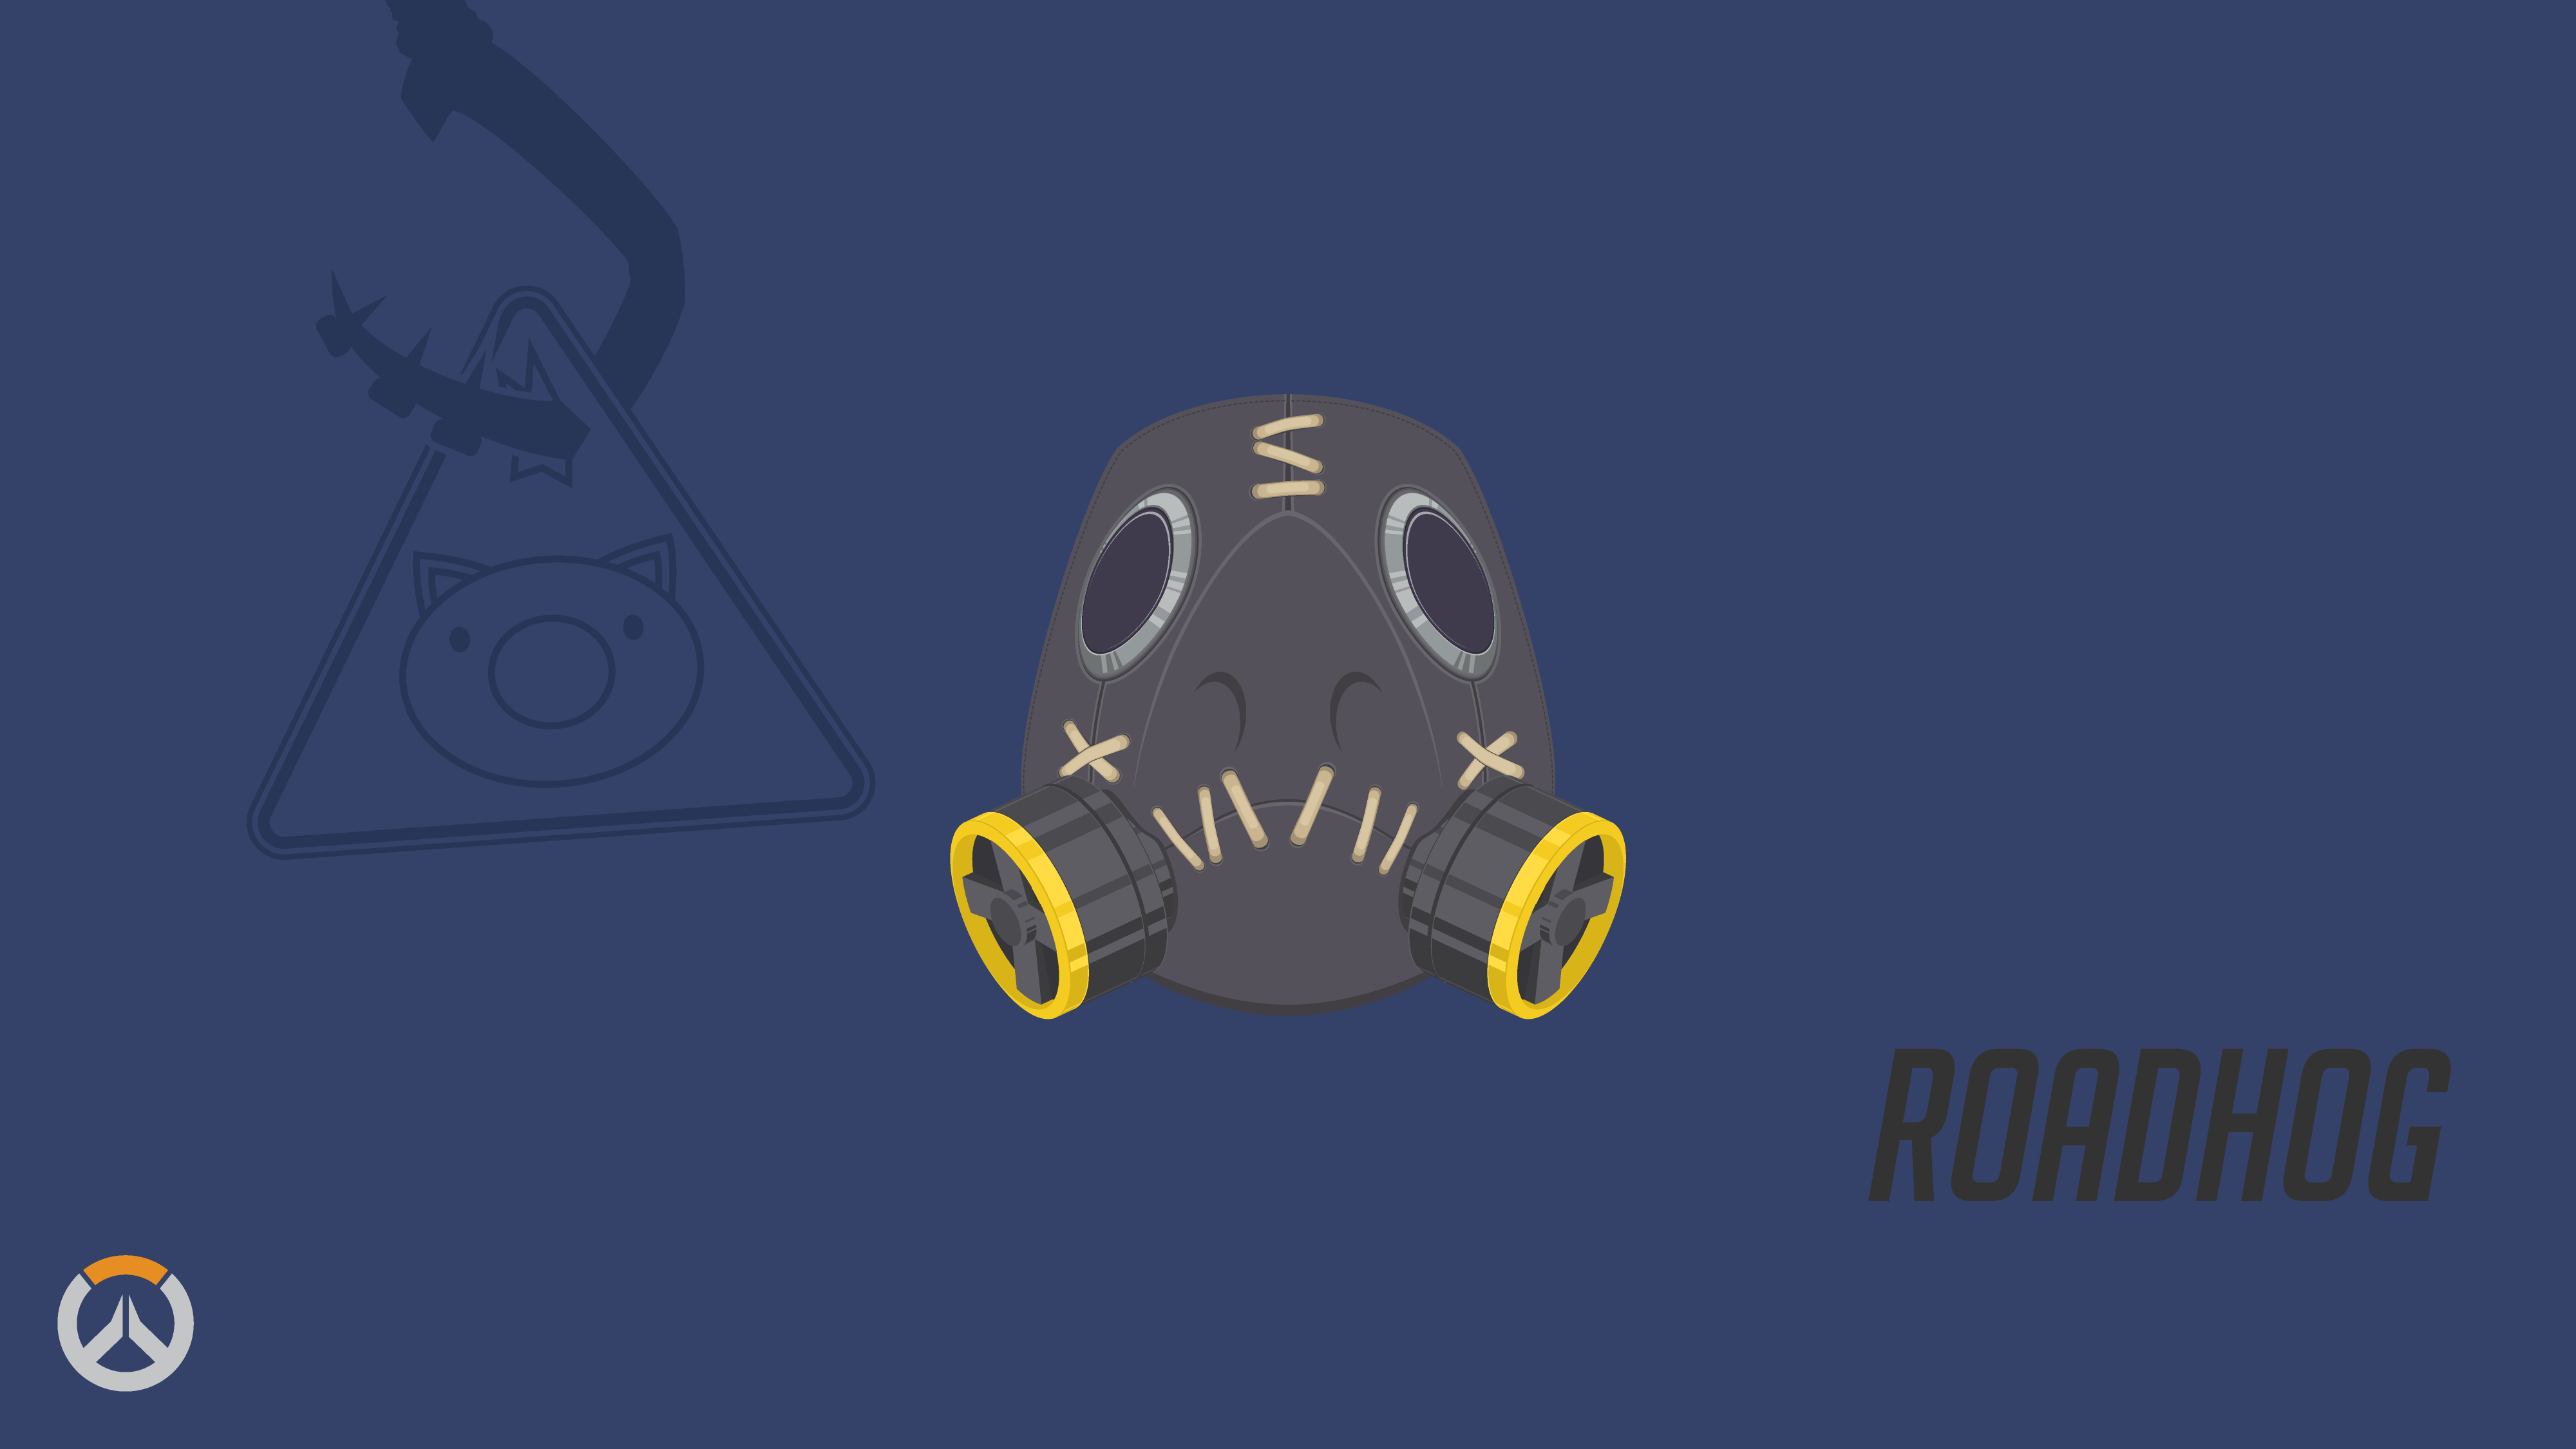 58 Roadhog Overwatch Hd Wallpapers Background Images Wallpaper Abyss